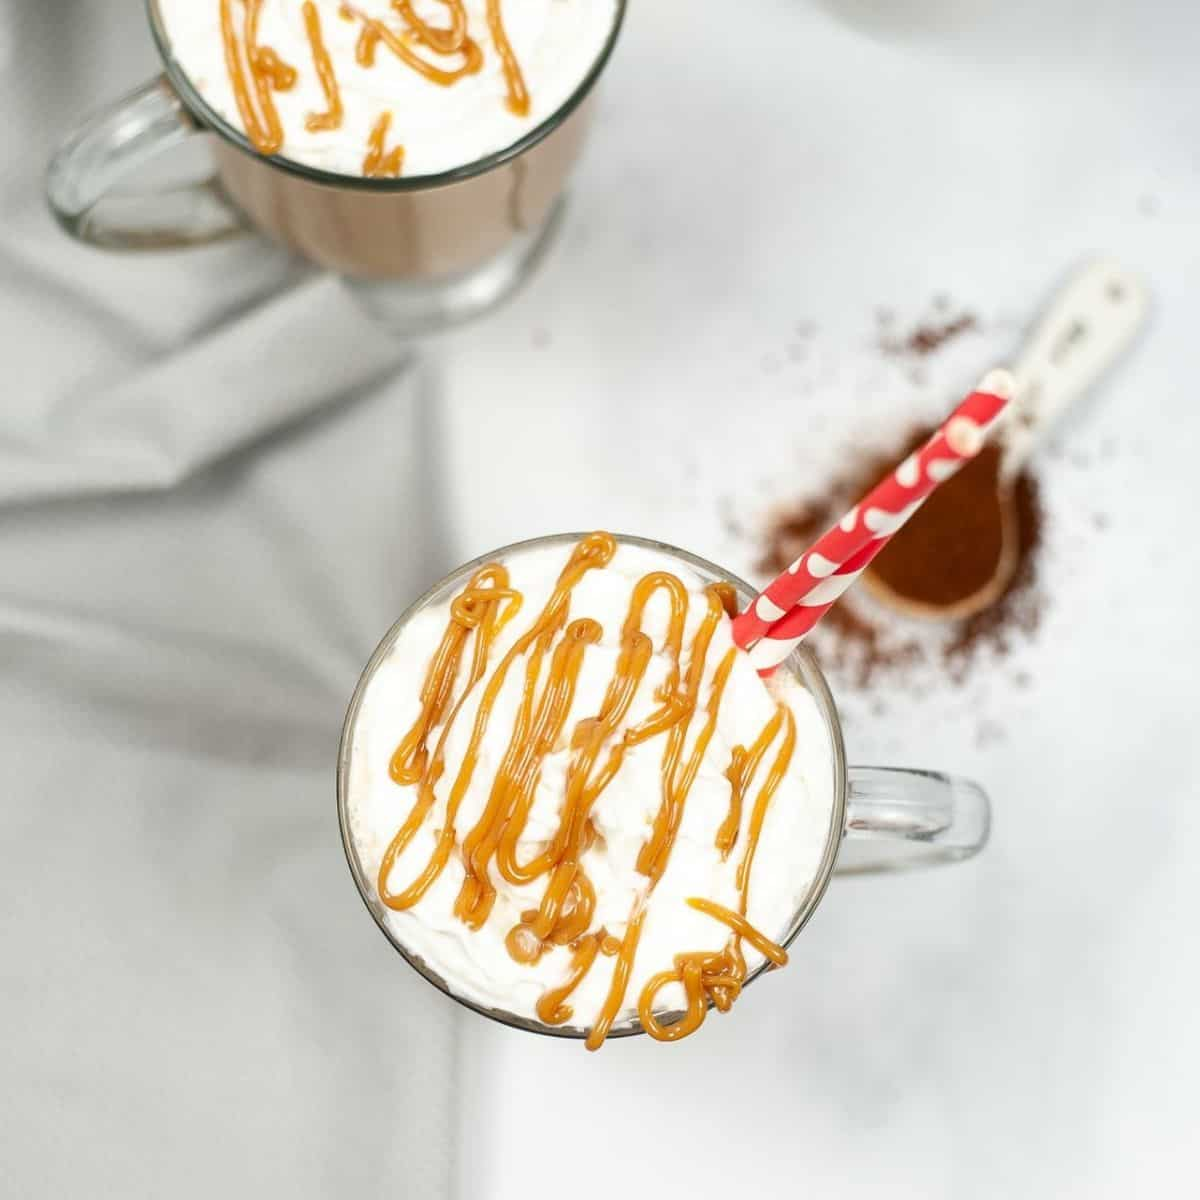 An overhead shot of two mugs of caramel macchiato topped with whipped cream, caramel sauce, and a straw in the cup.